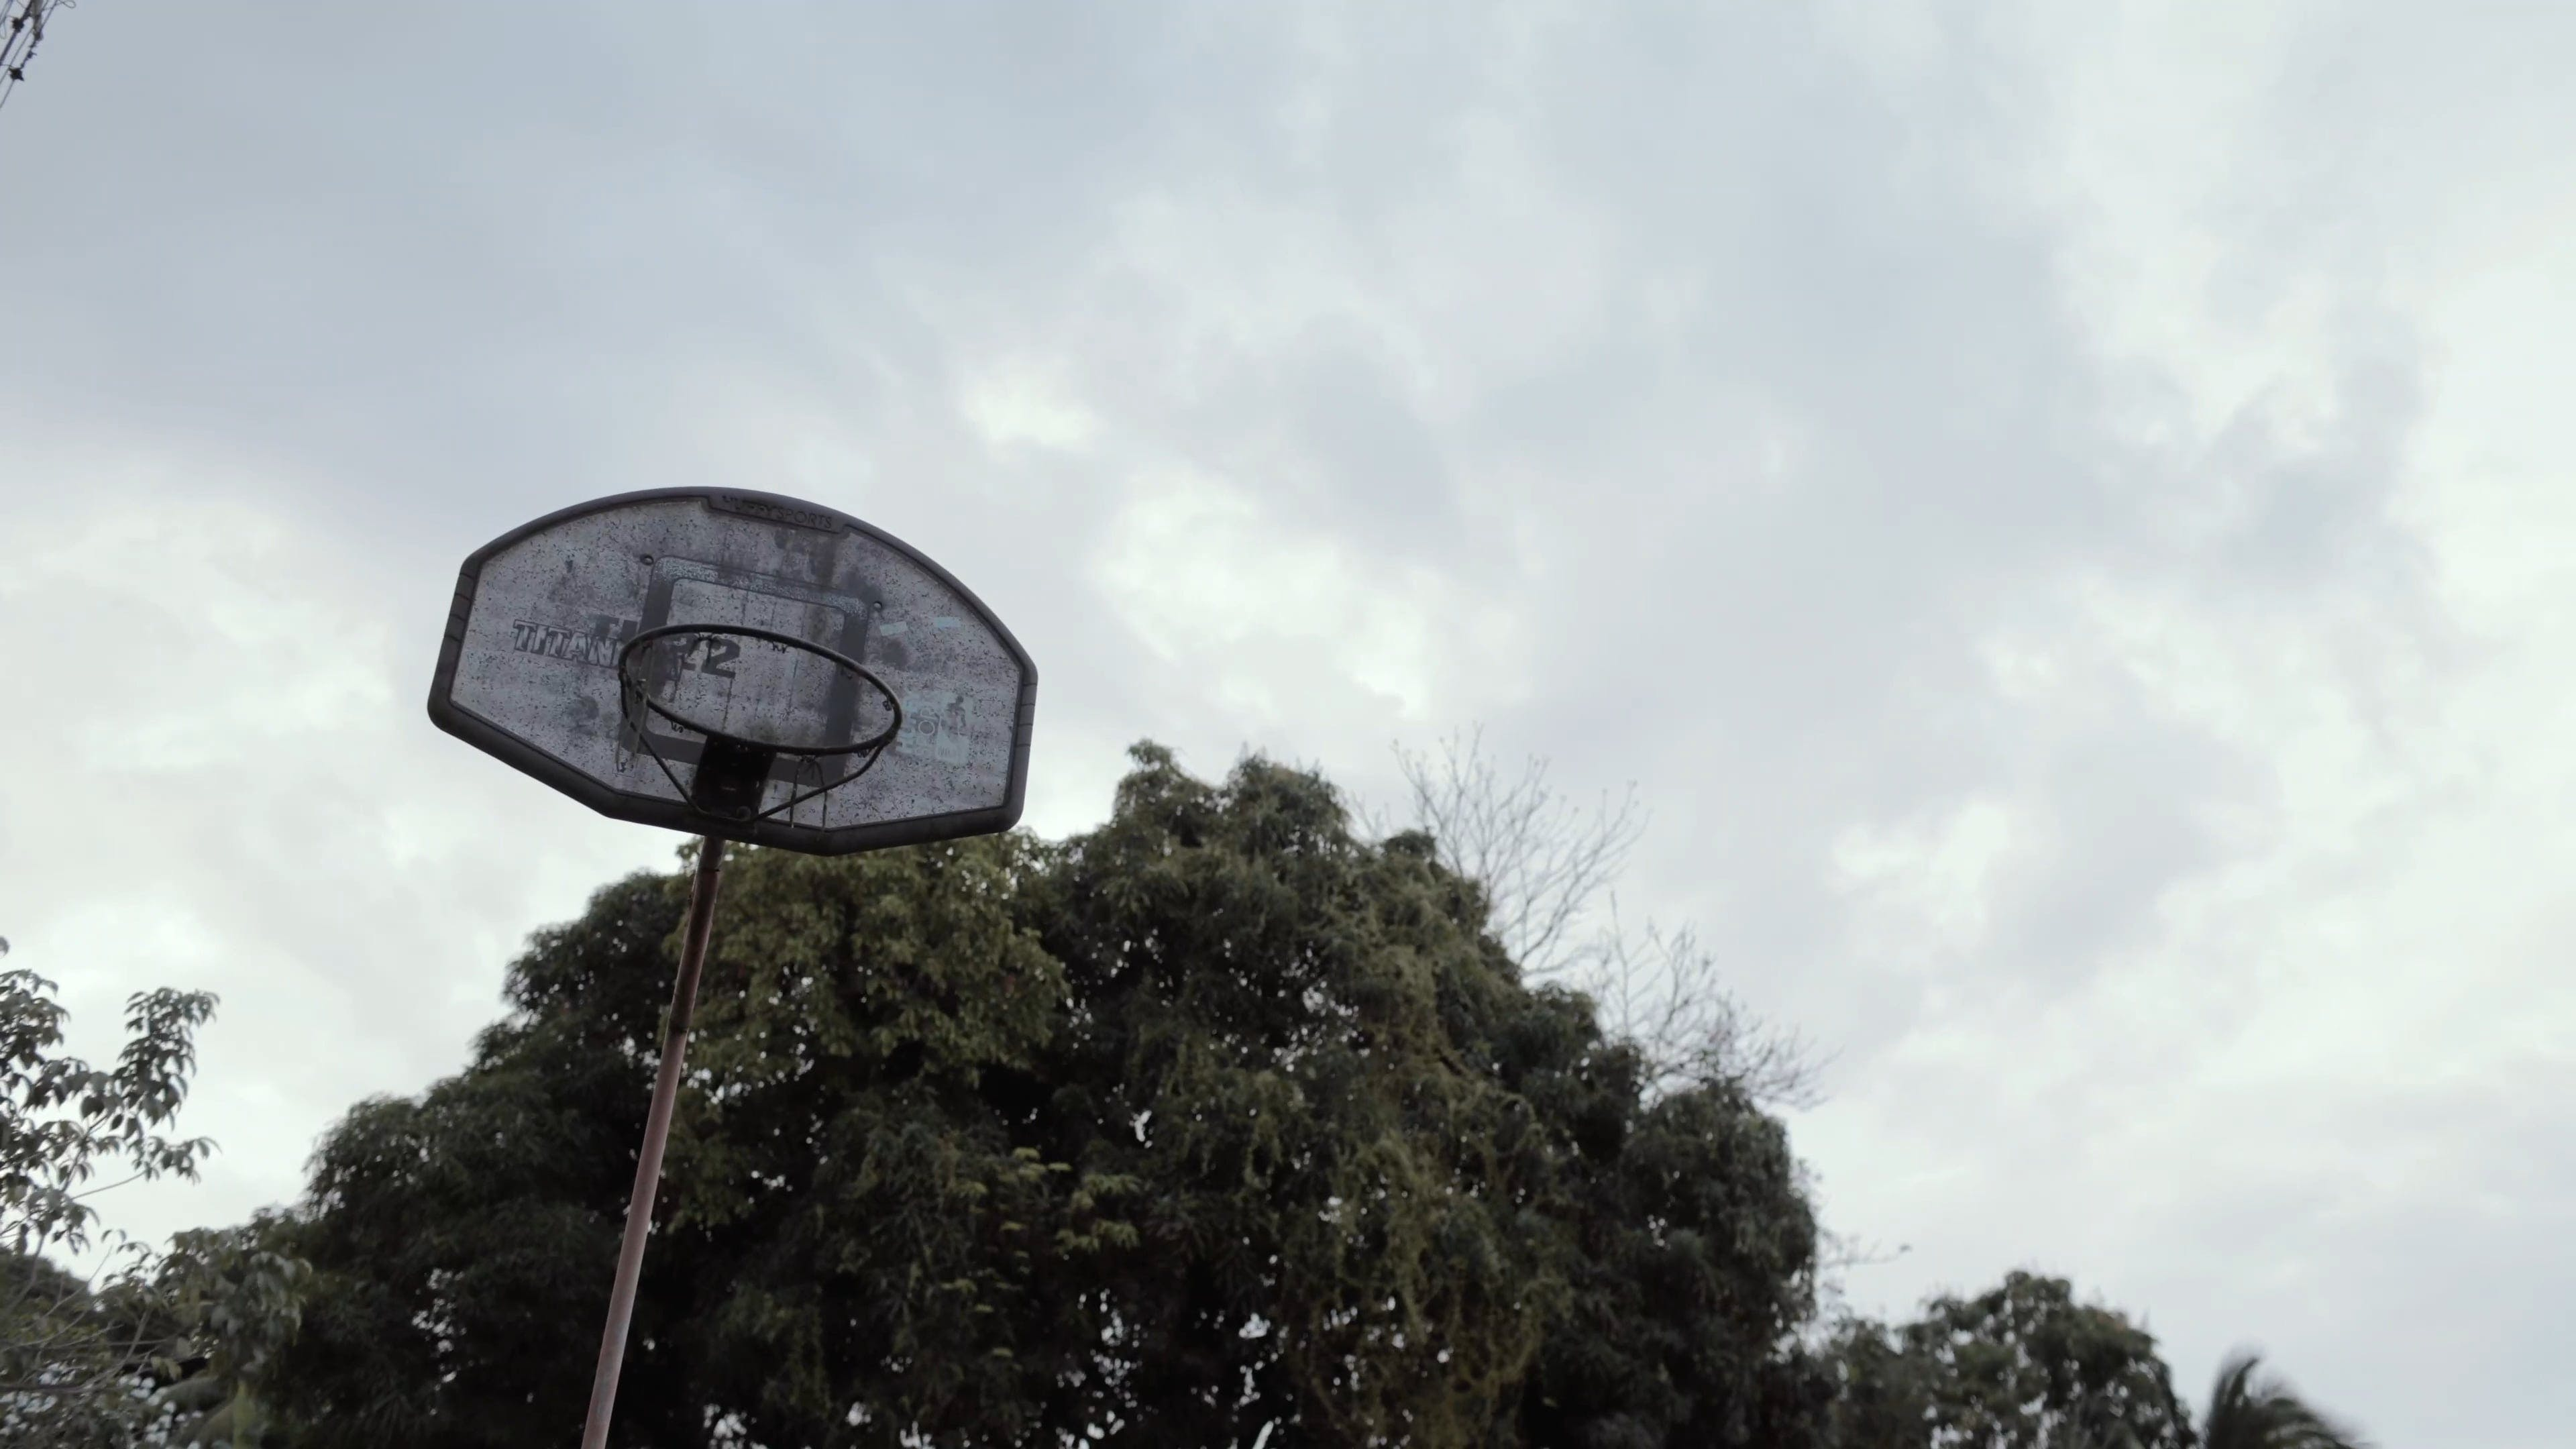 Basketball Hoop In Low Angle Photography